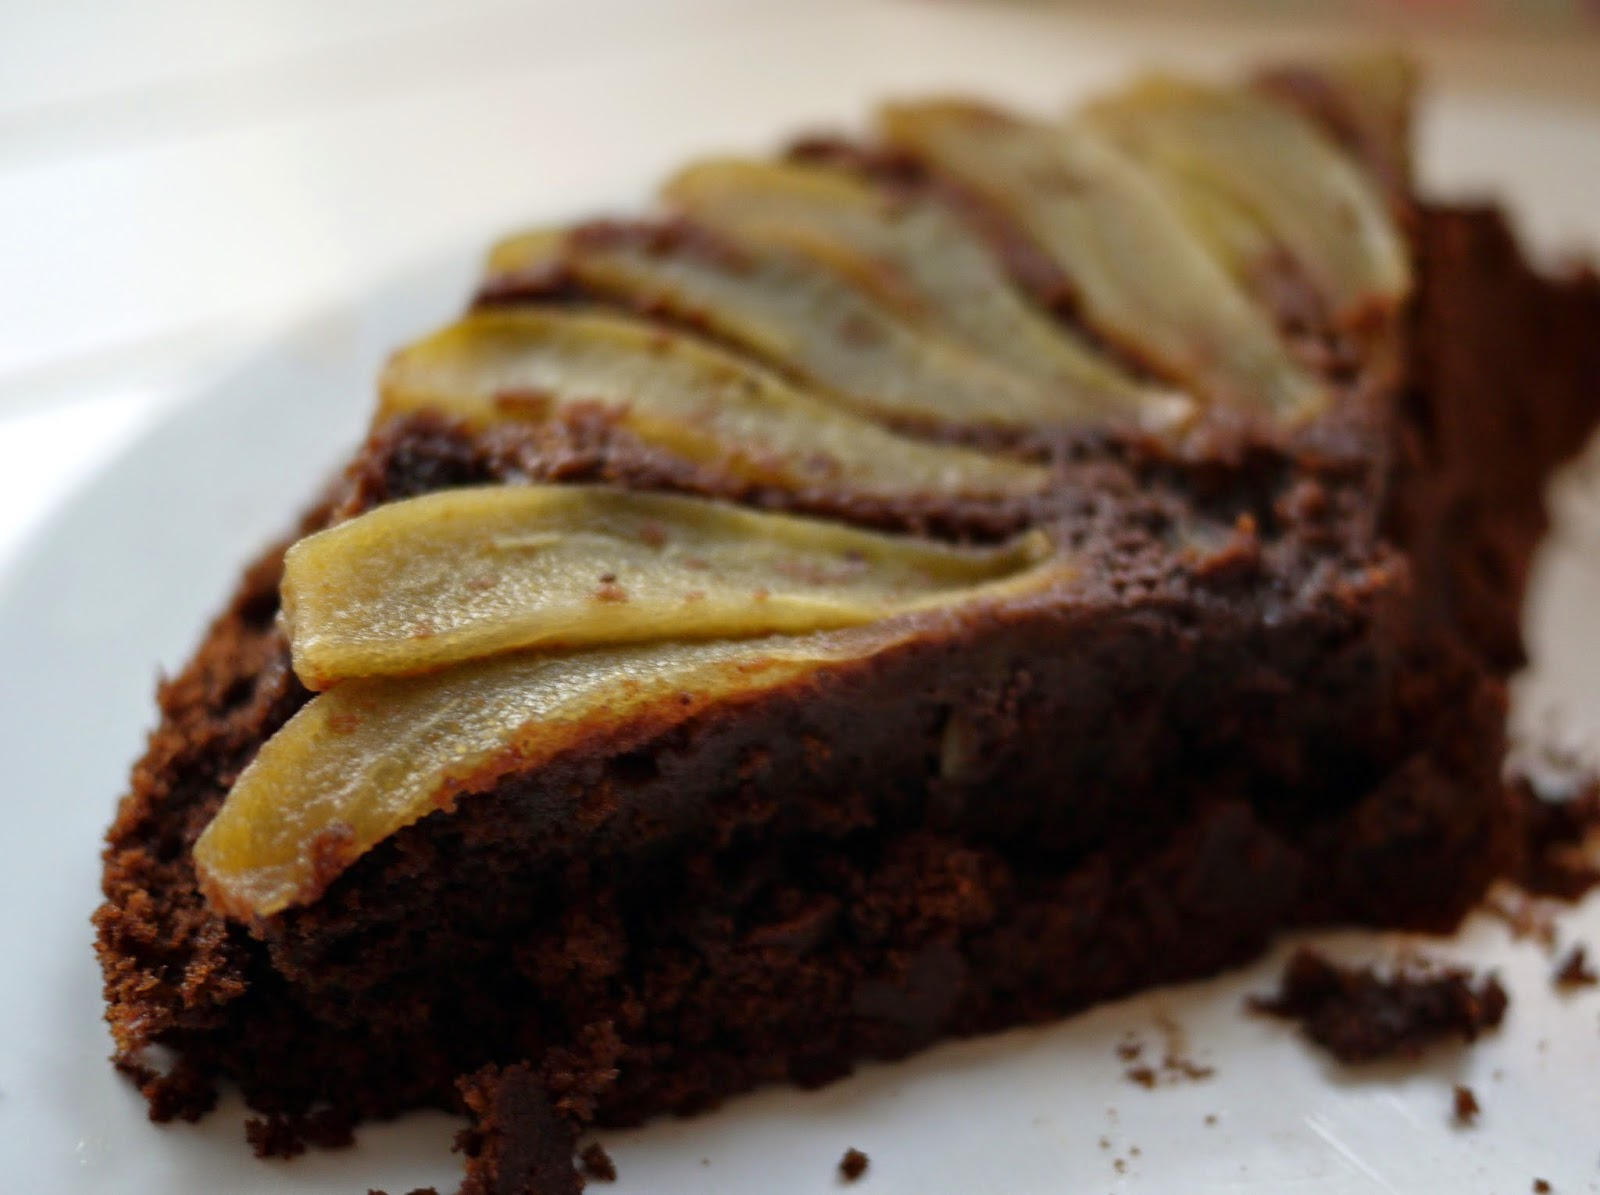 Pear almond chocolate cake recipe